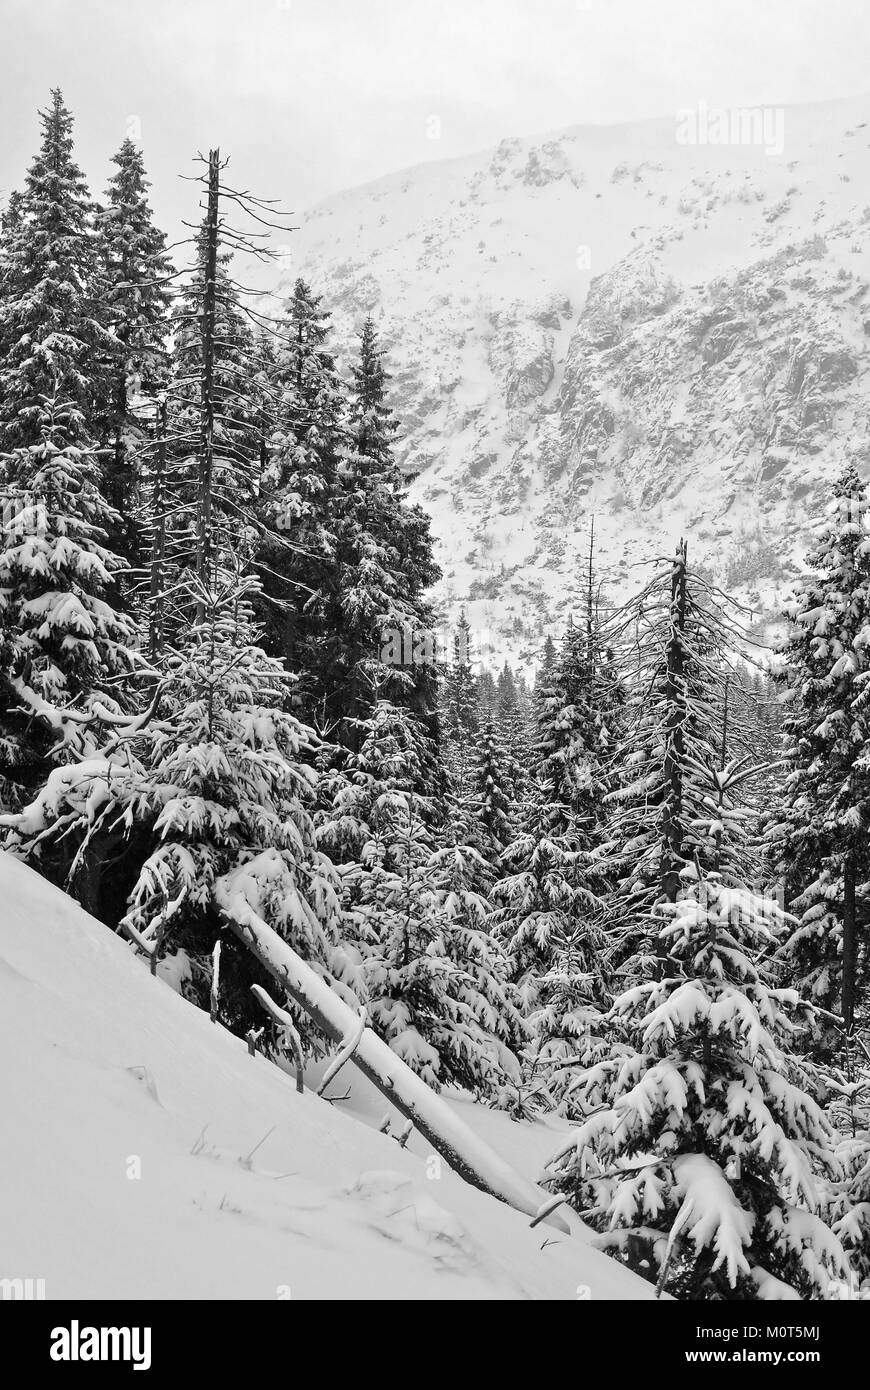 Spruces covered with snow growing on the side of a mountain with a cliff in the background - Stock Image